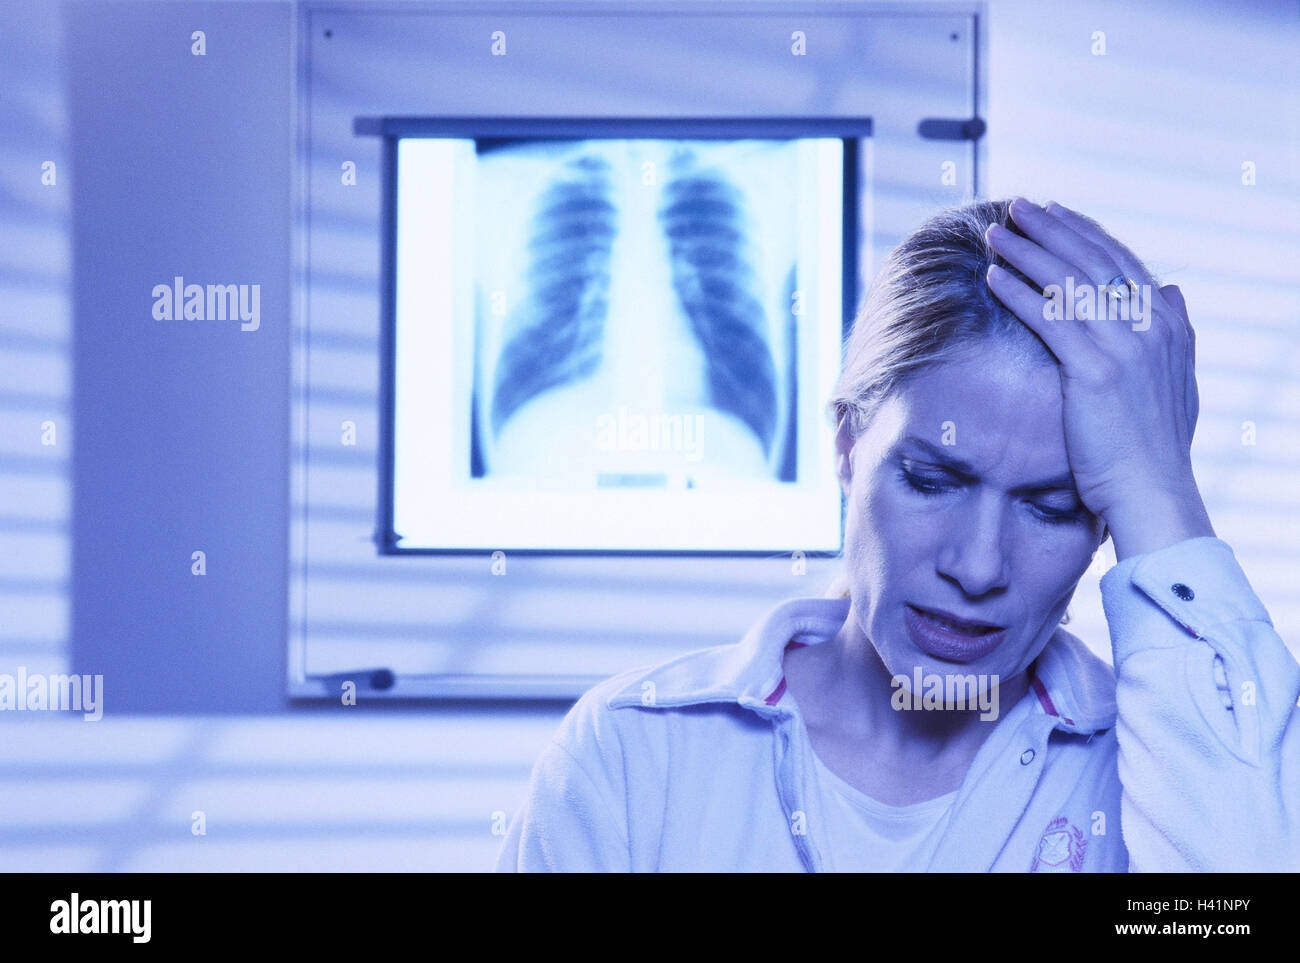 Medical practise, roentgenogram, patient, gesture, desperation, portrait, practise, roentgenology, X-ray picture, - Stock Image